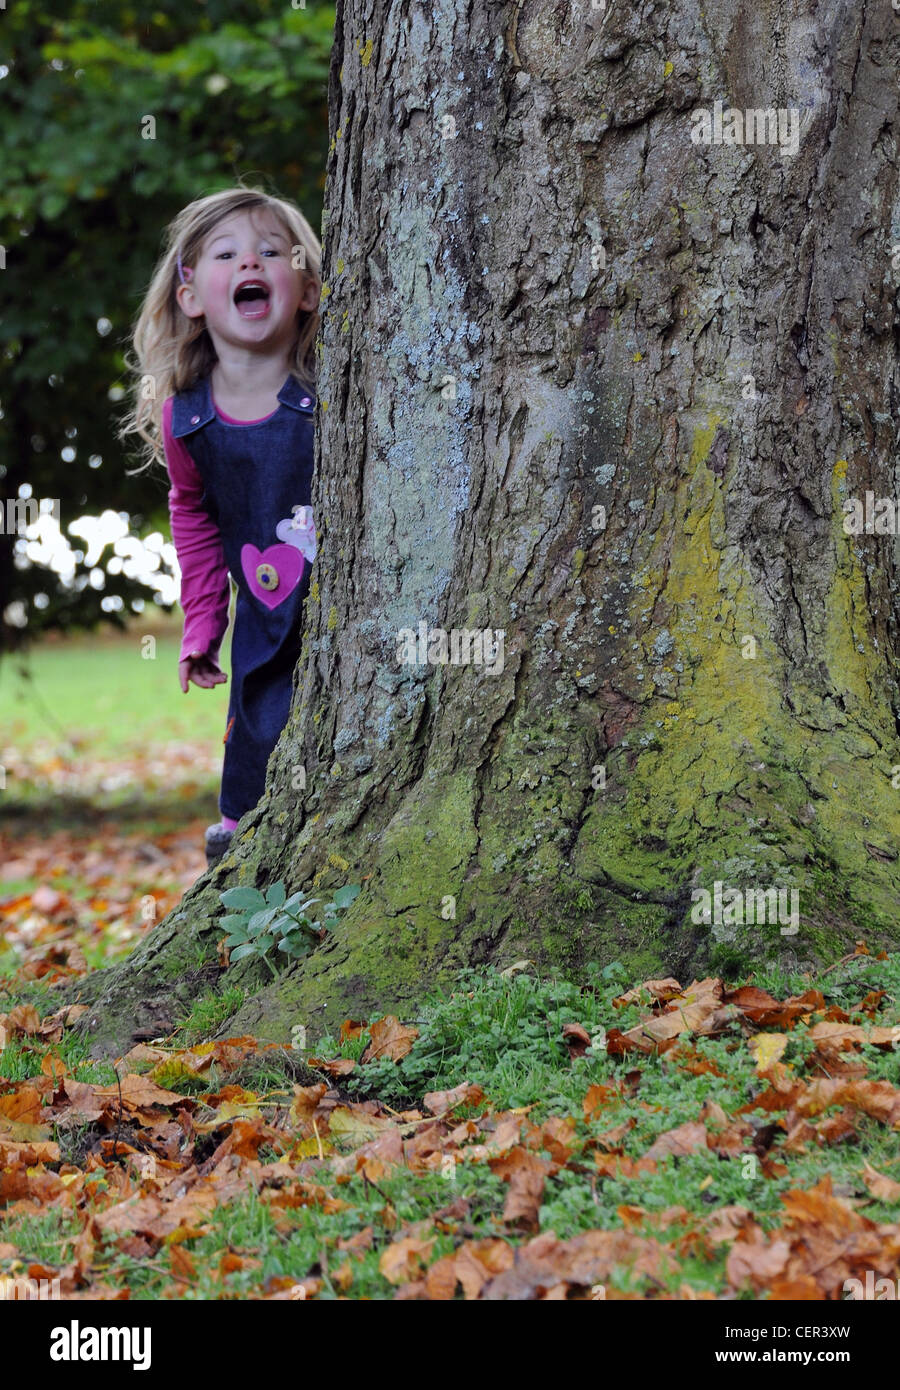 A young girl peeks out from behind a tree during a game of hide and seek on Hubbard's Hills. - Stock Image